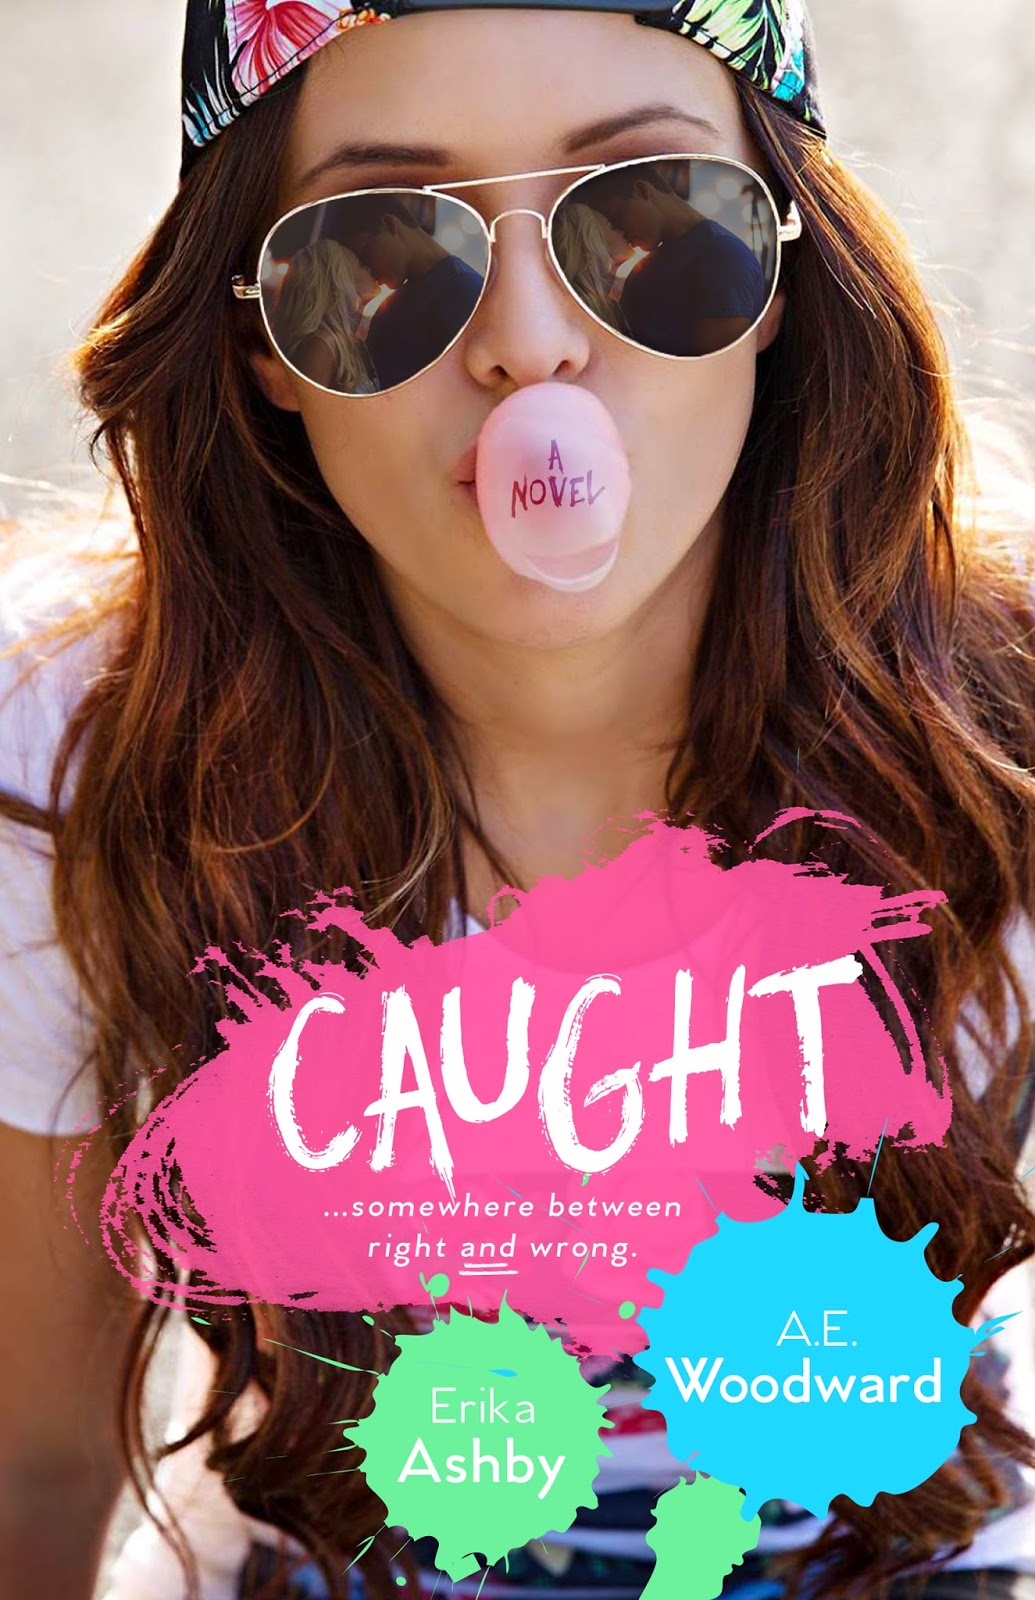 Caught Cover